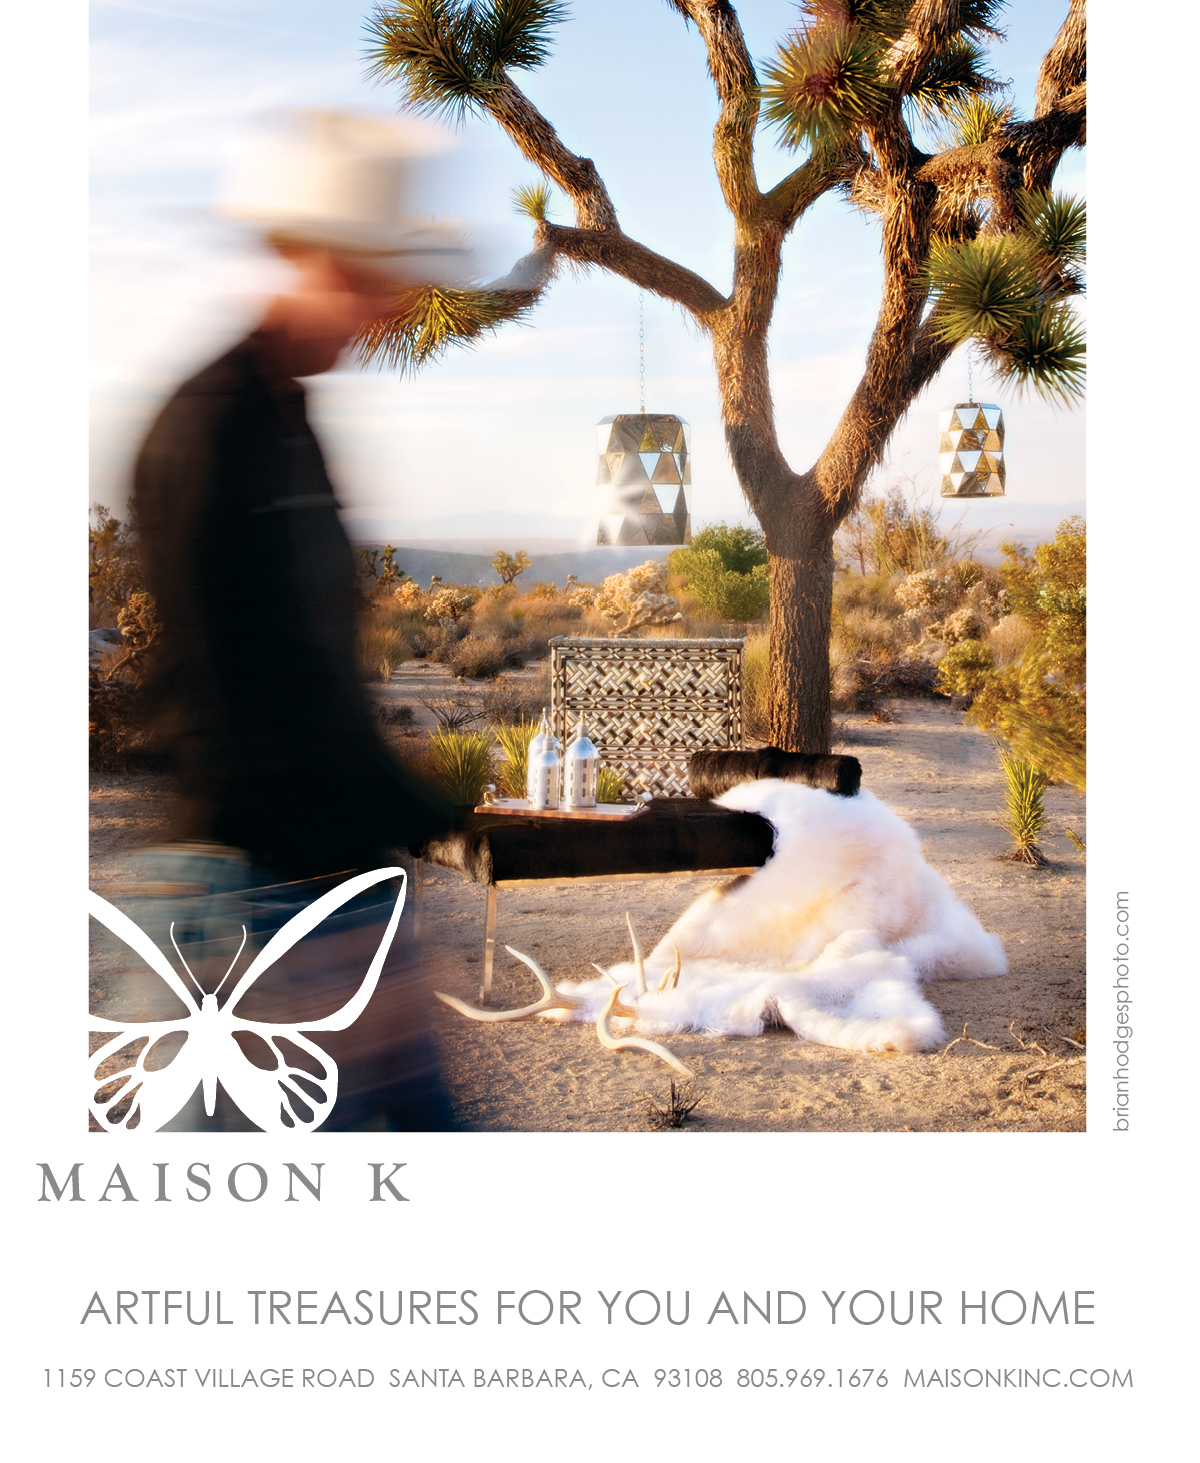 Artful Treasures for You and Your Home at MAISON K